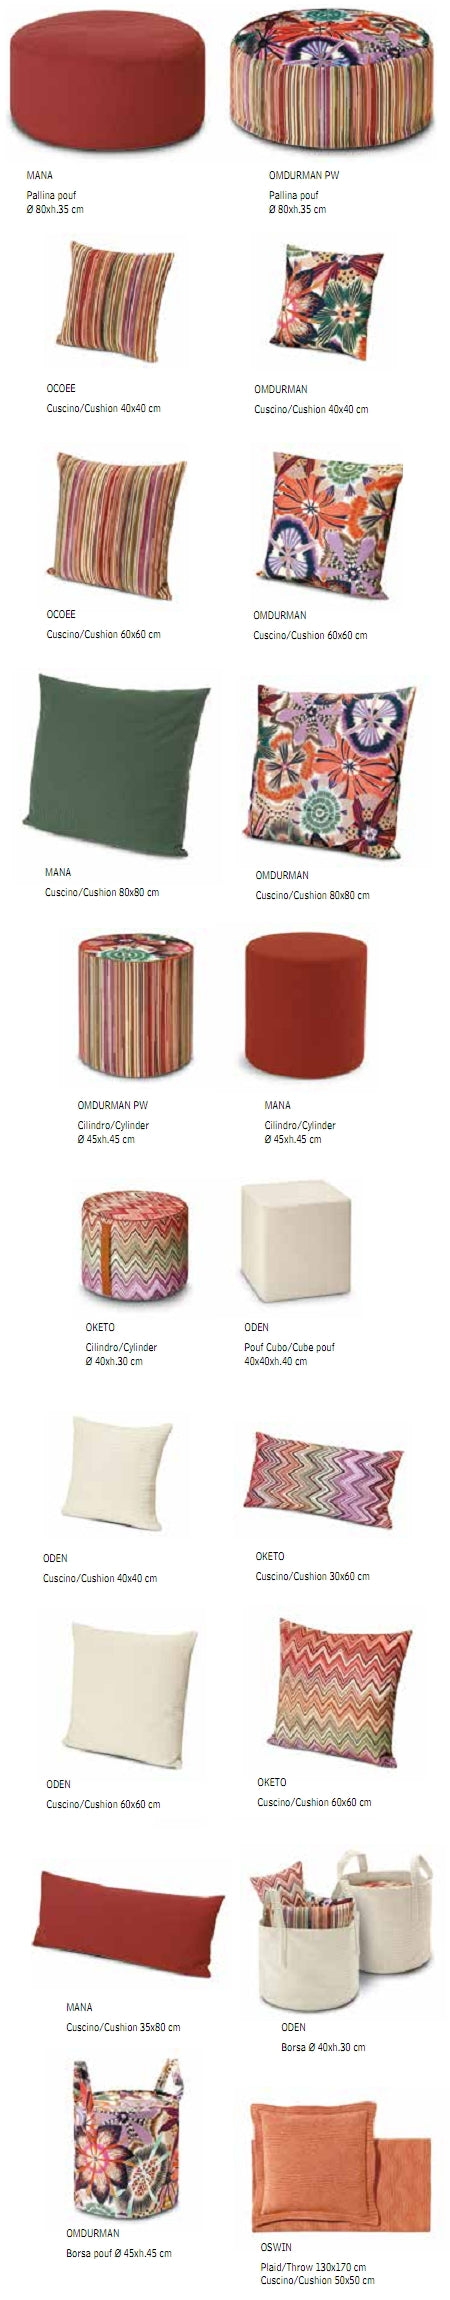 Missoni Cushion and Footstool Collection - Master Classic Trevira 156 - italydesign.com